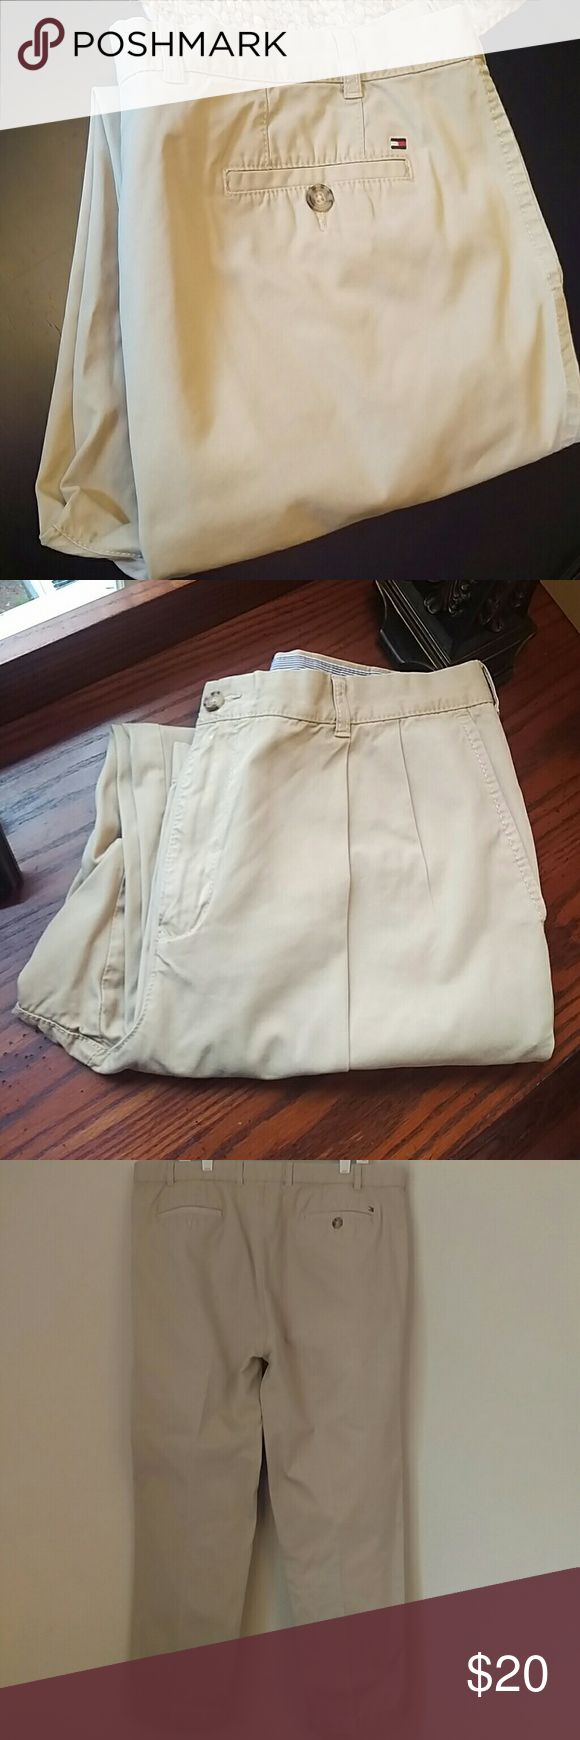 Men's Tommy Hilfiger Khaki Pleated Chino's Pleated khaki chino's by Tommy Hilfiger. Only professionally cleaned. No flaws. Like new. 40 waist, 30 length. Tommy Hilfiger Pants Chinos & Khakis